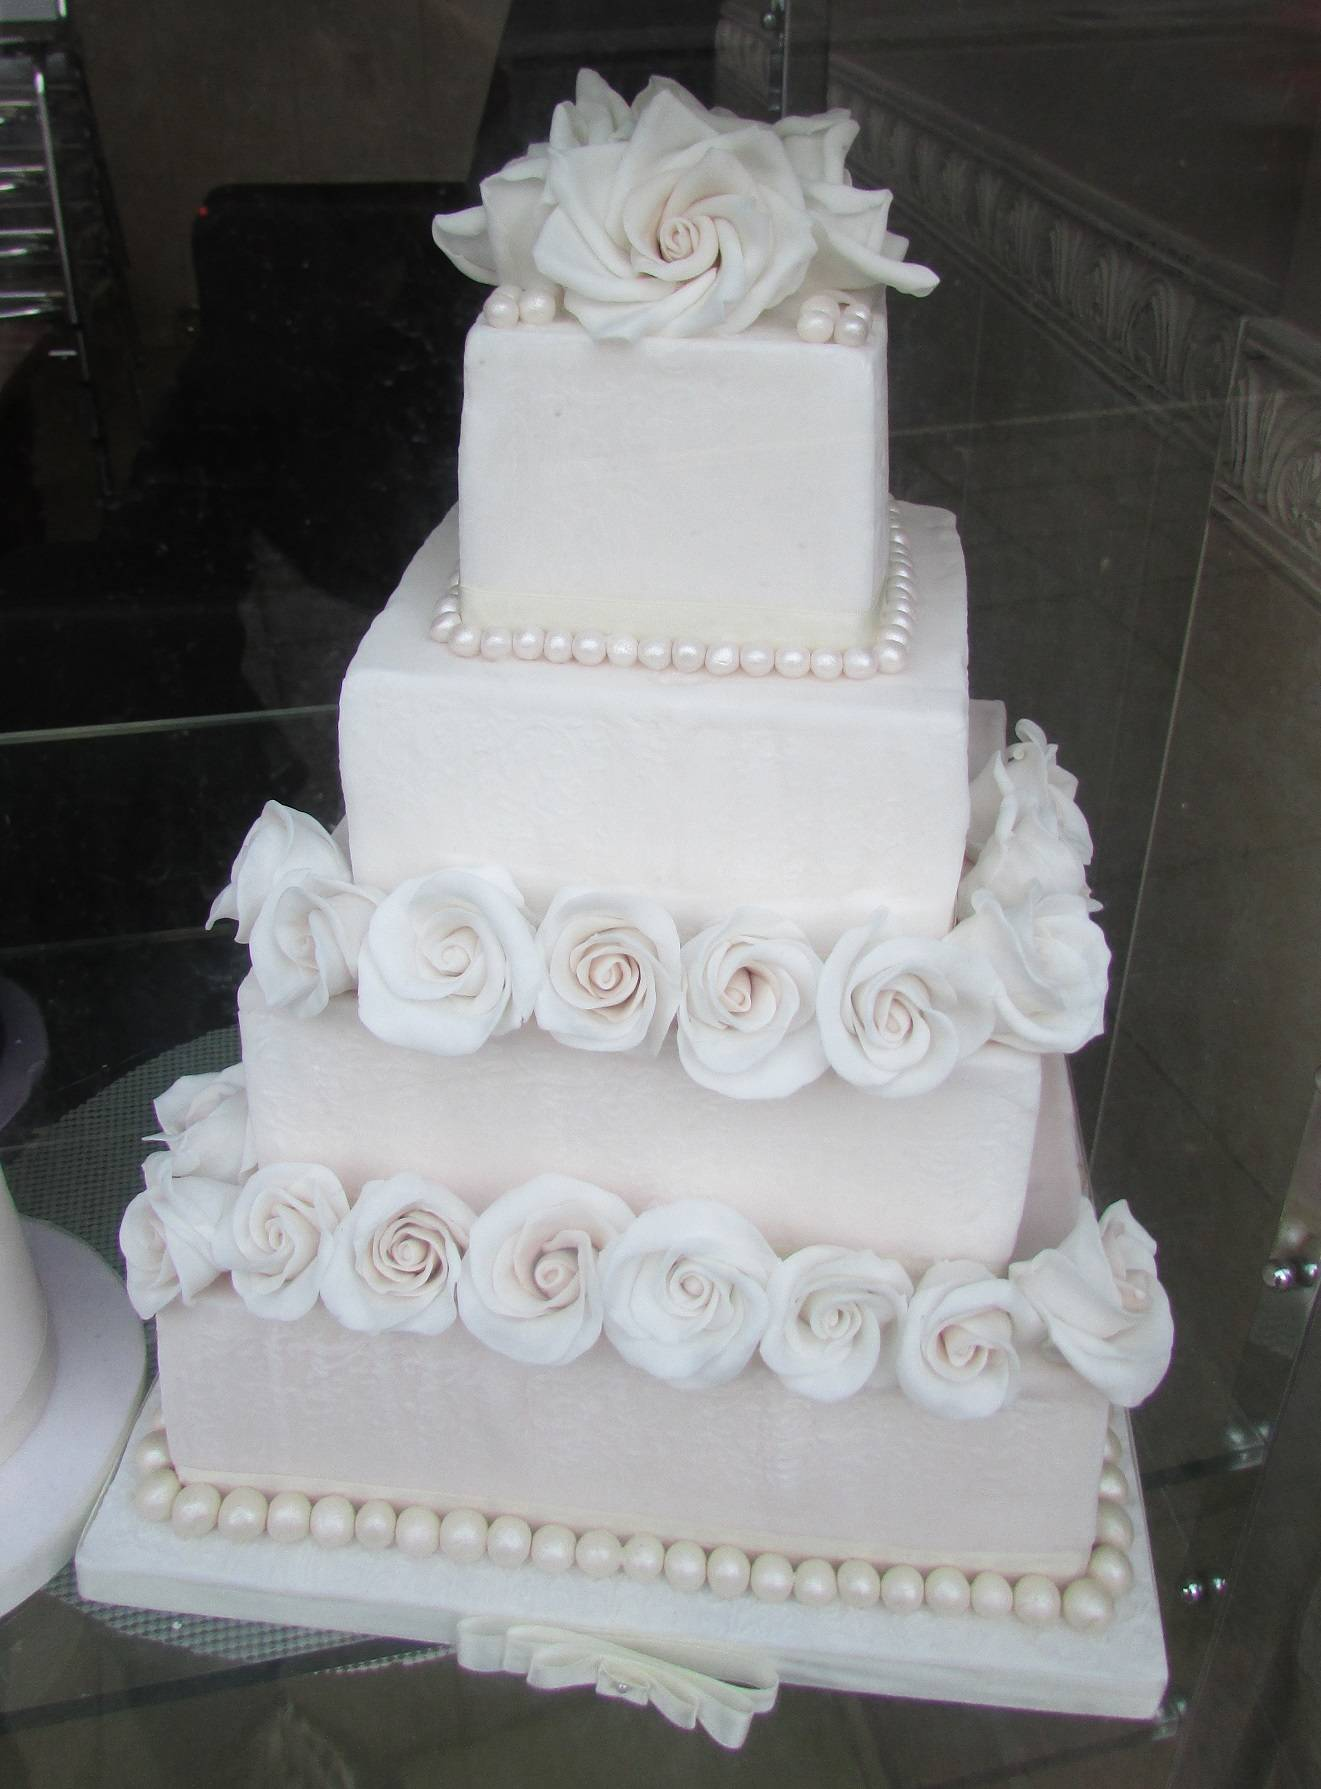 Roses and Pearls Square Tiered Wedding Cake